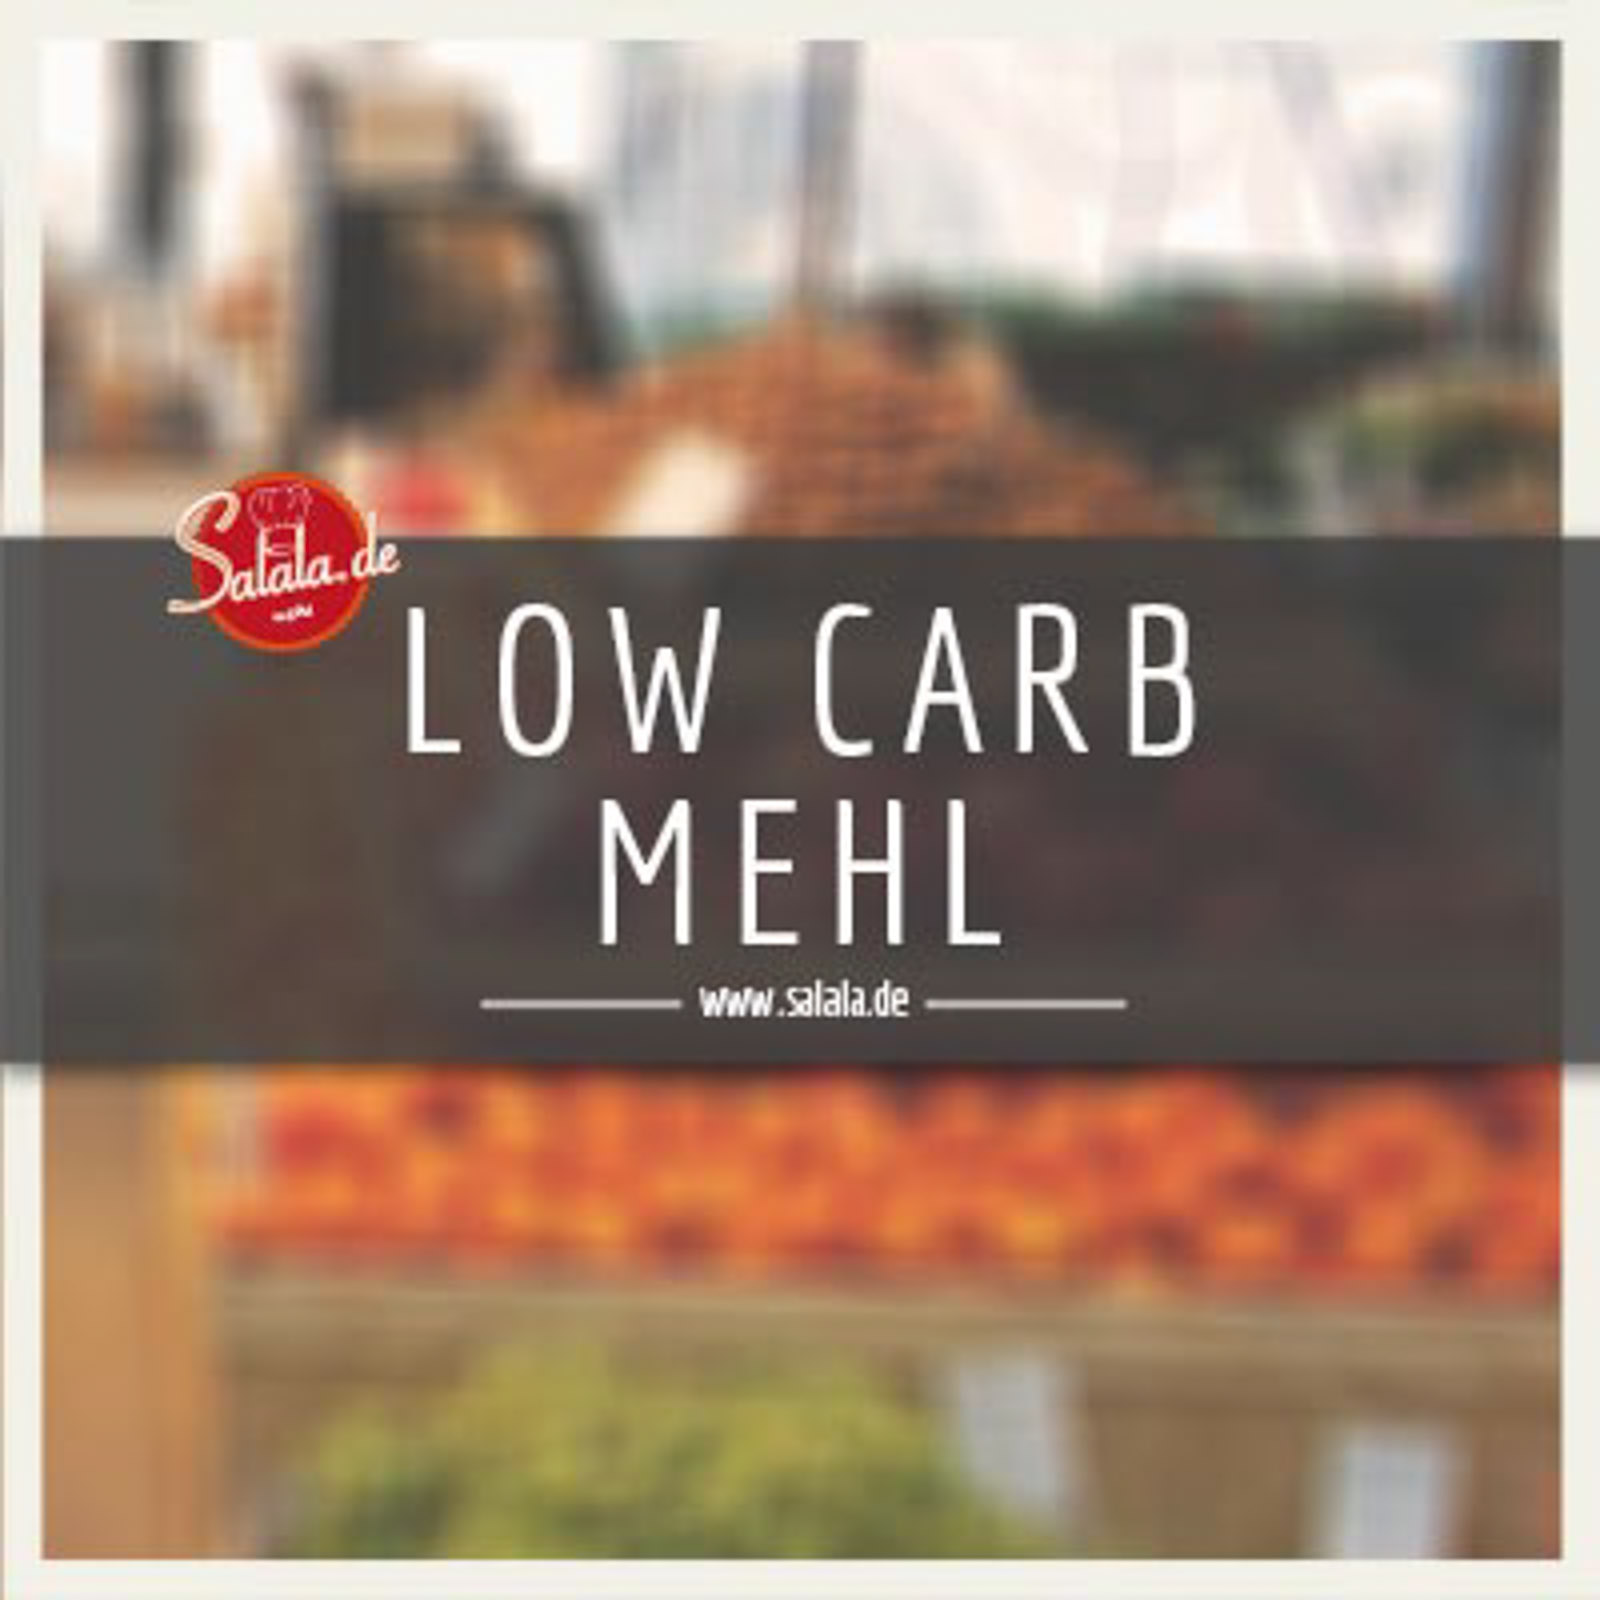 Low Carb Mehl